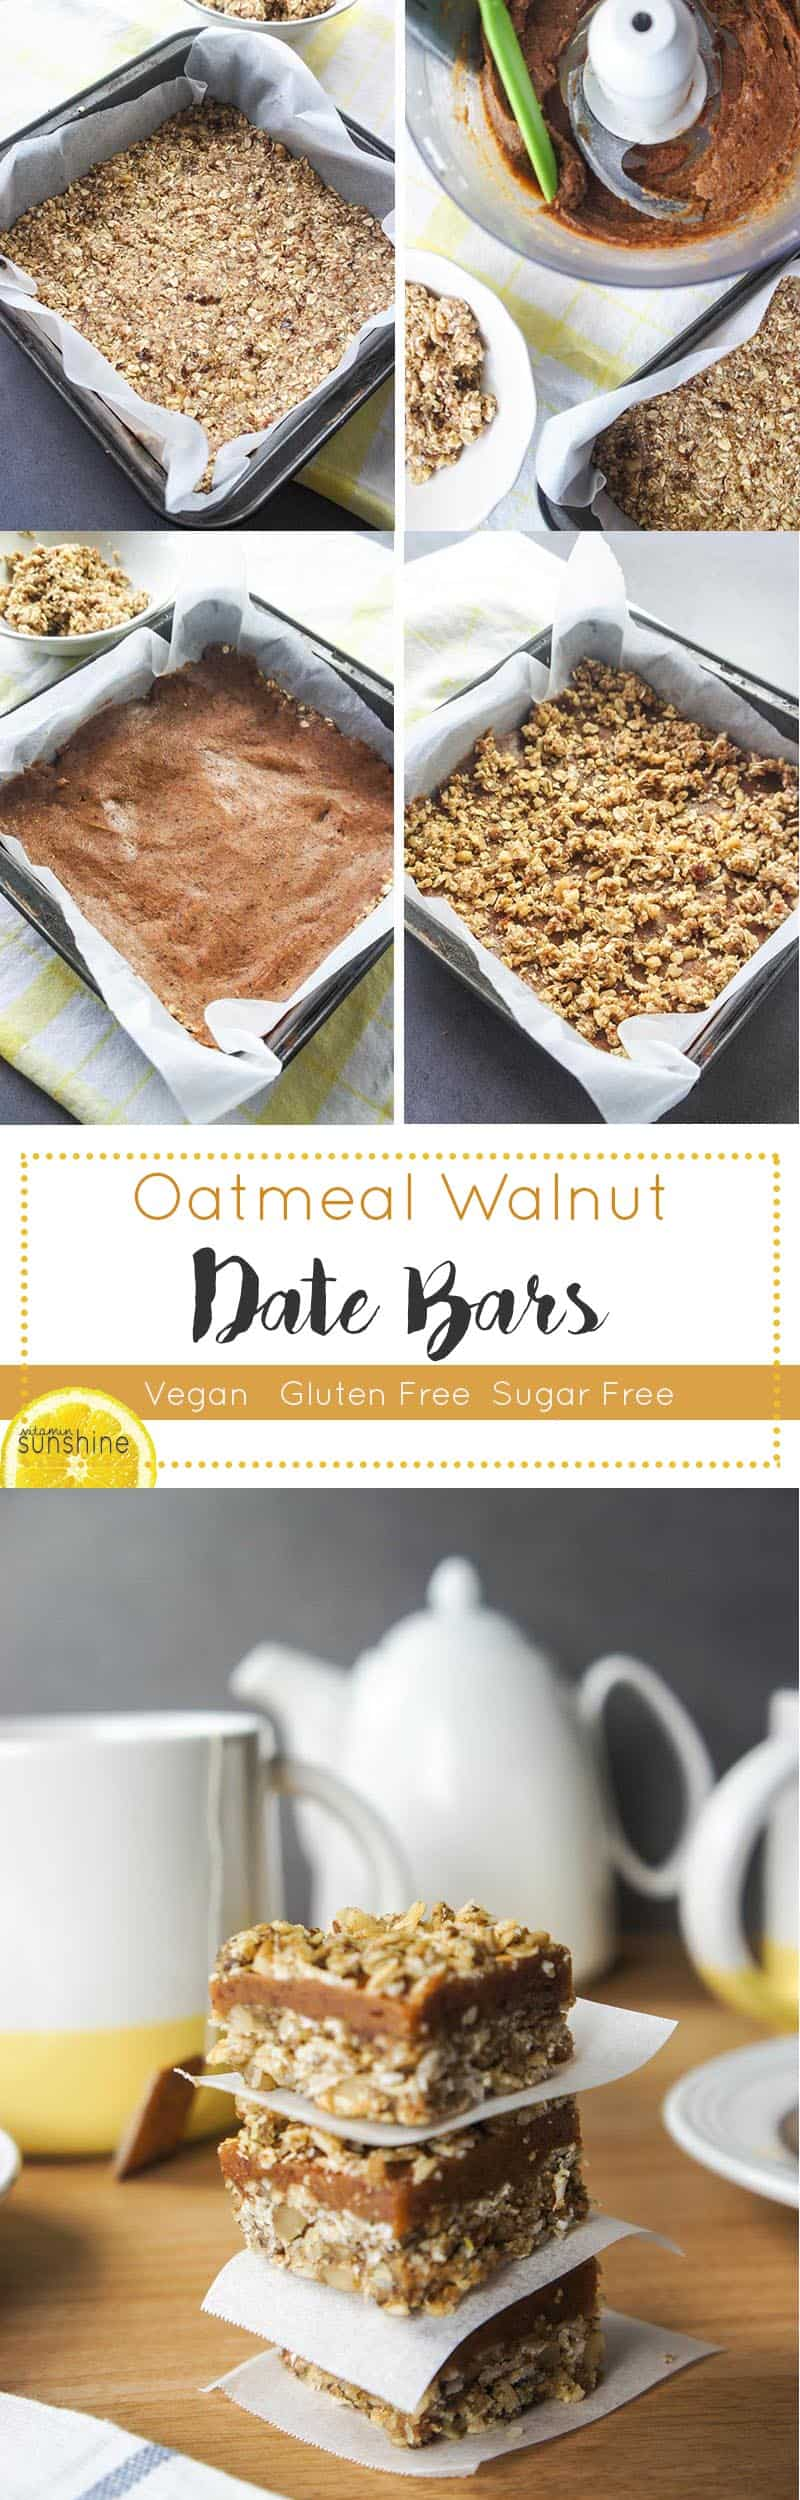 Oatmeal Walnut Date Bars / This delicious, gluten free and sugar free ...